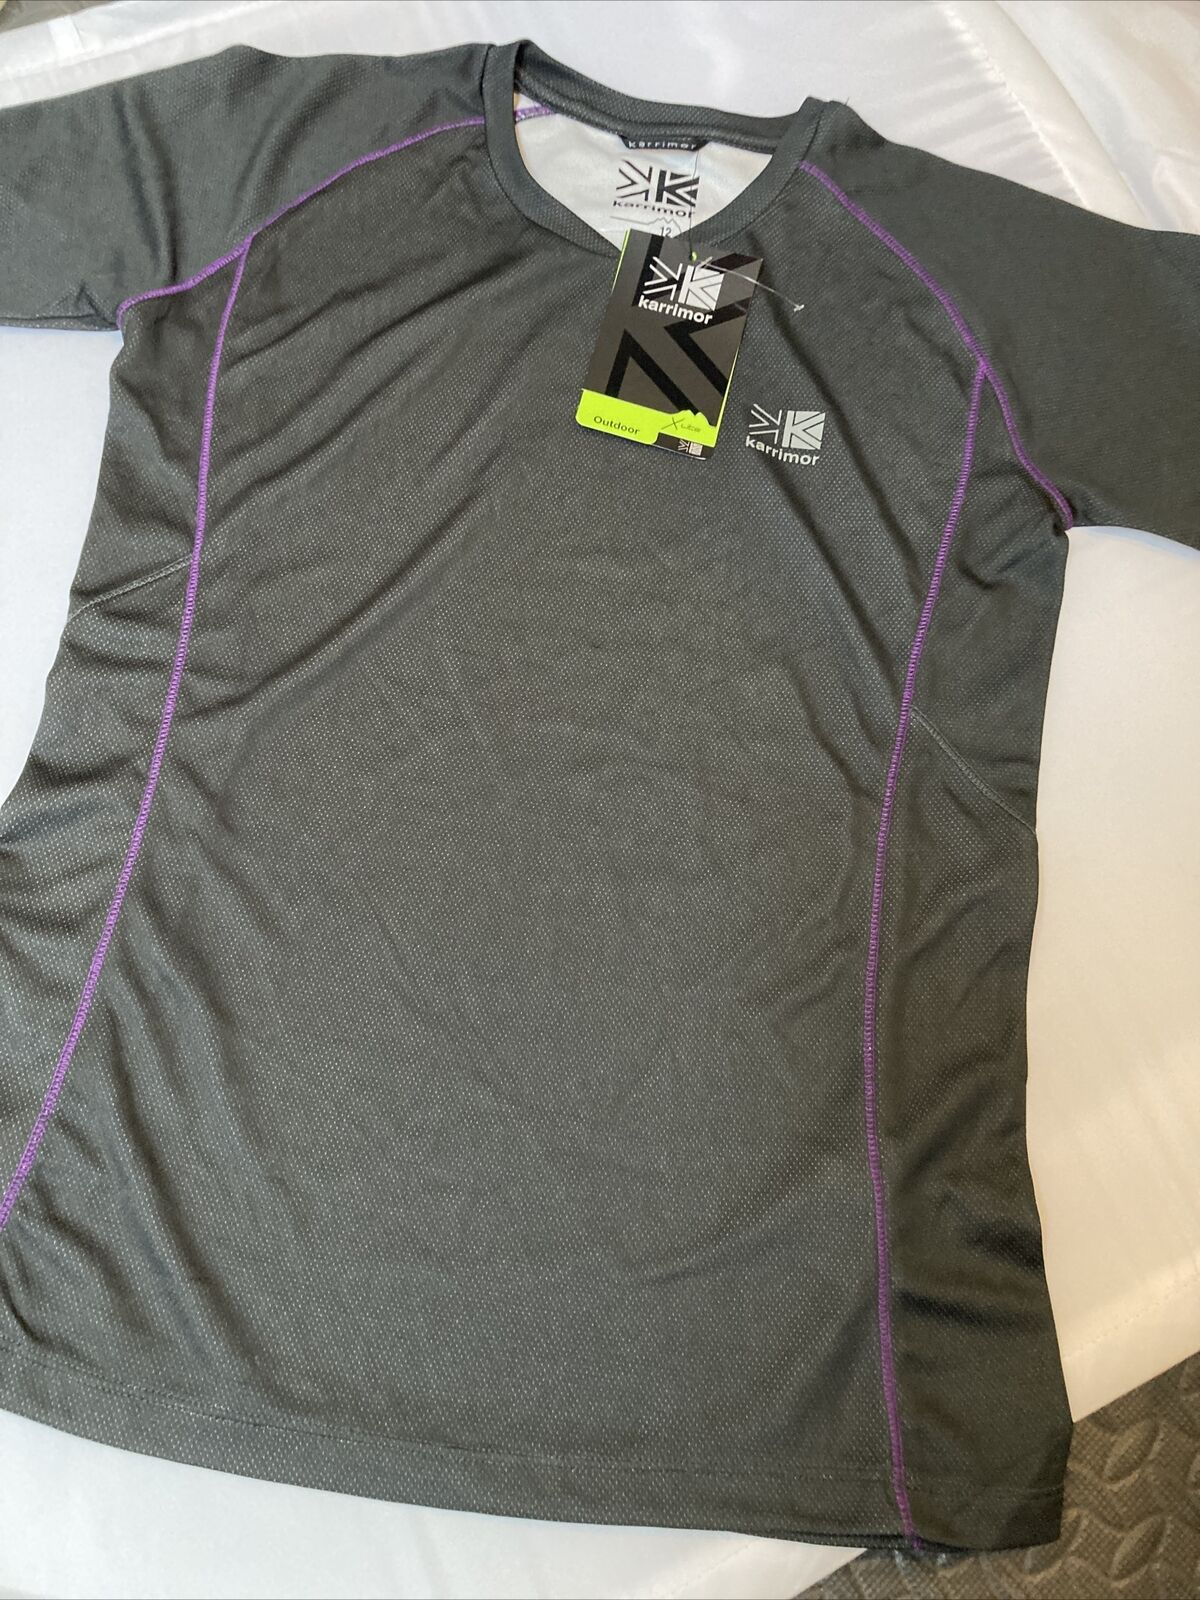 Womens Ladies Karrimor Tech T-Shirt 12 Charcoal Breathable Quick Dry Lightweight